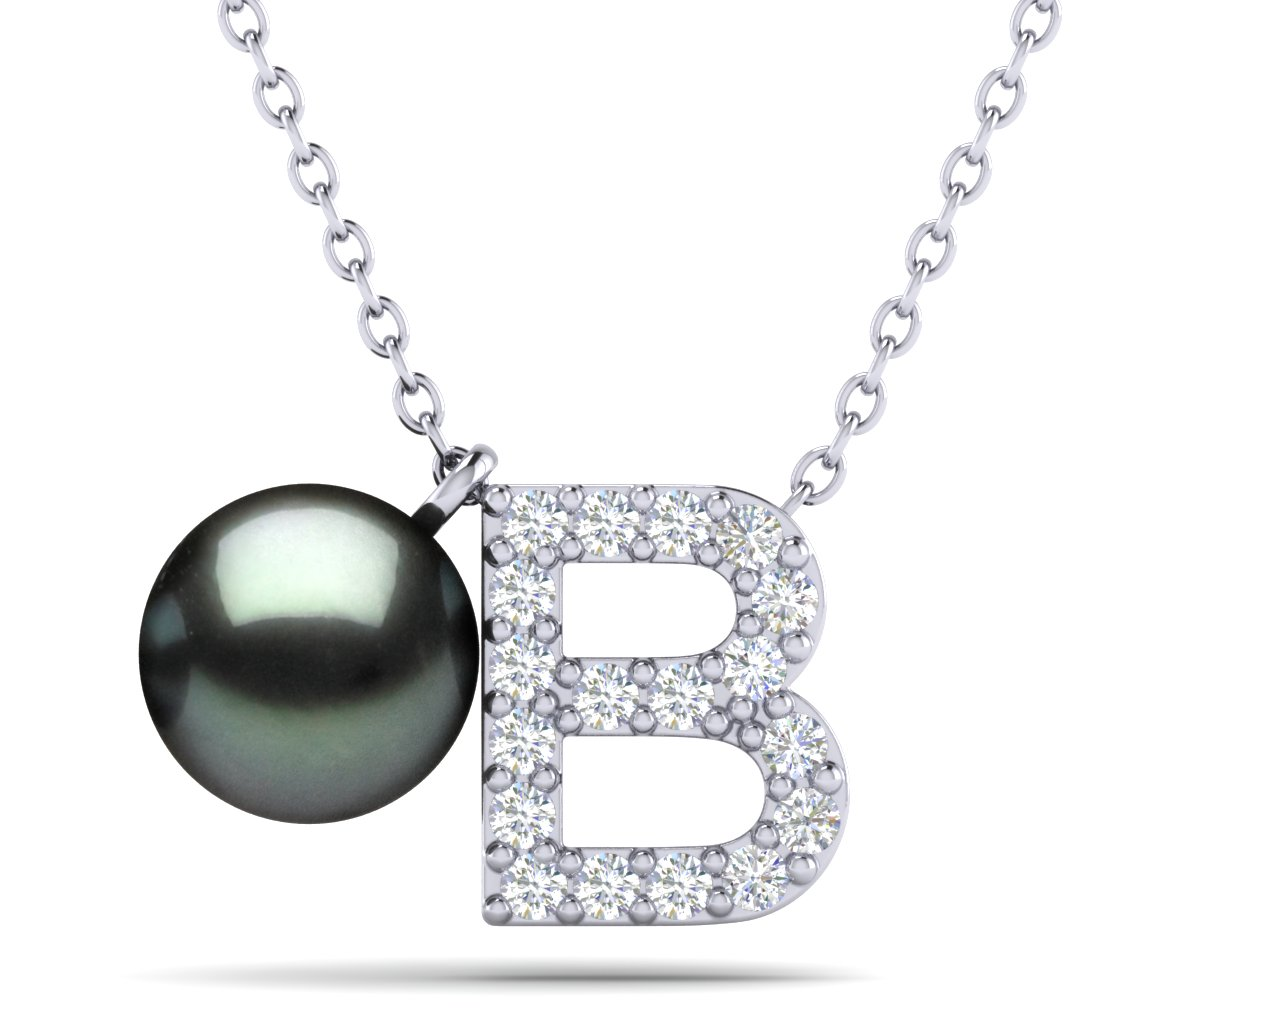 veritas vvs tailored products link diamond necklace always